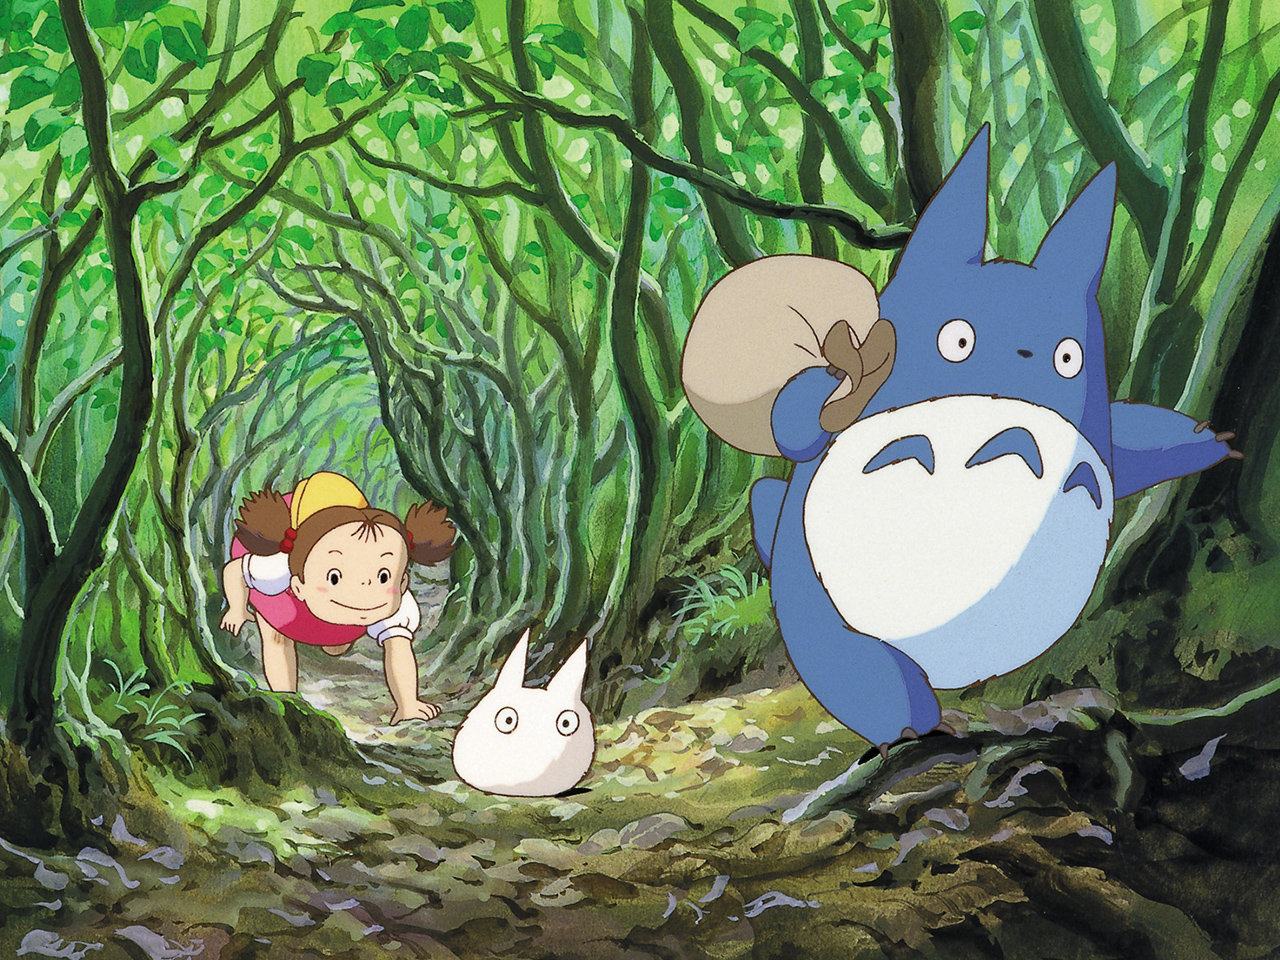 A still from the animated kids' movie My Neighbor Totoro